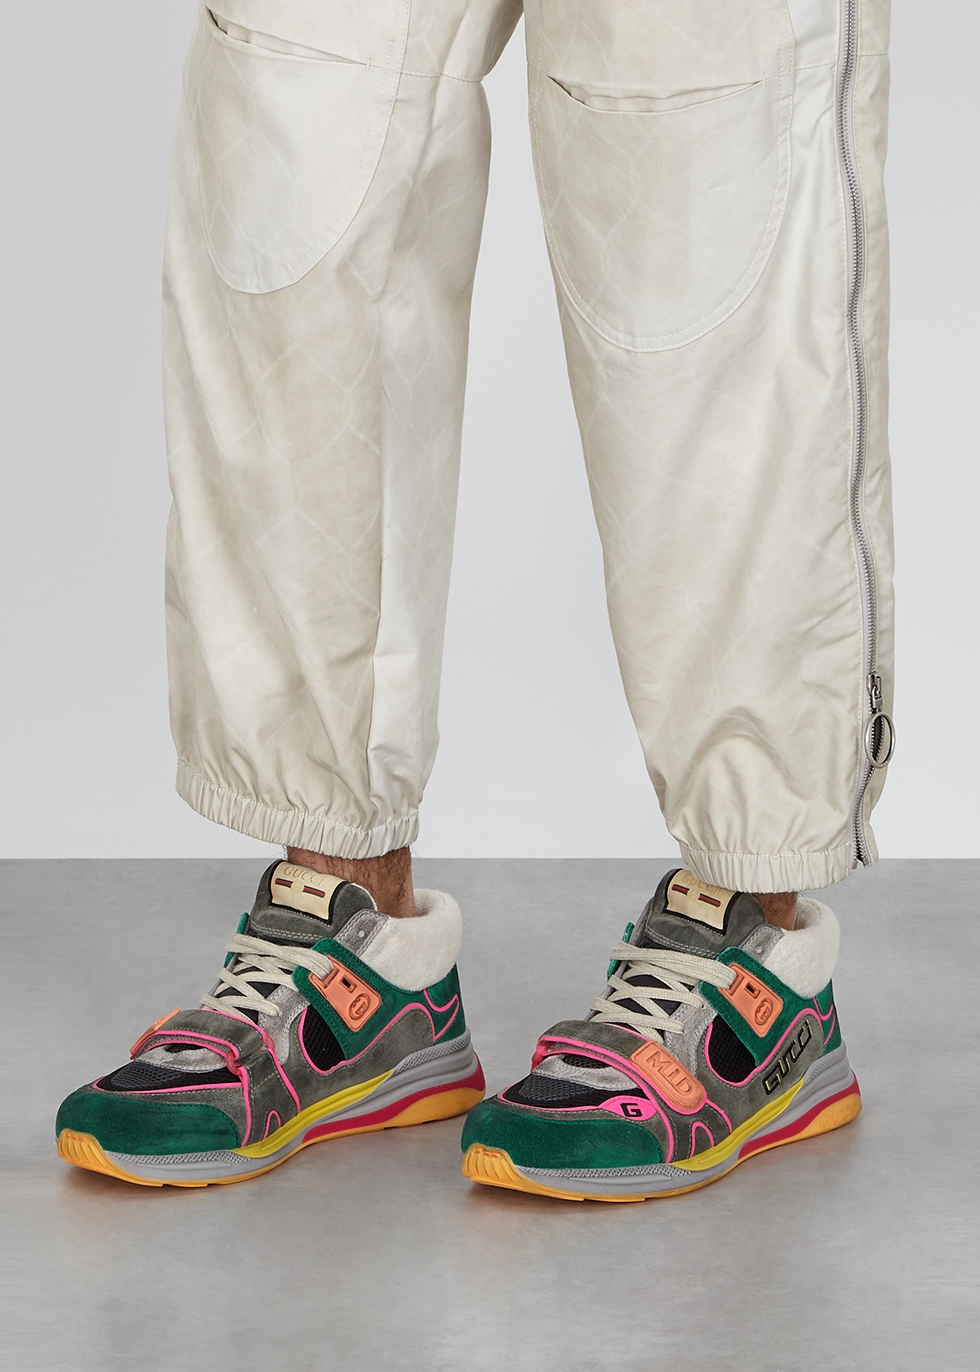 Gucci Ultrapace panelled suede sneakers